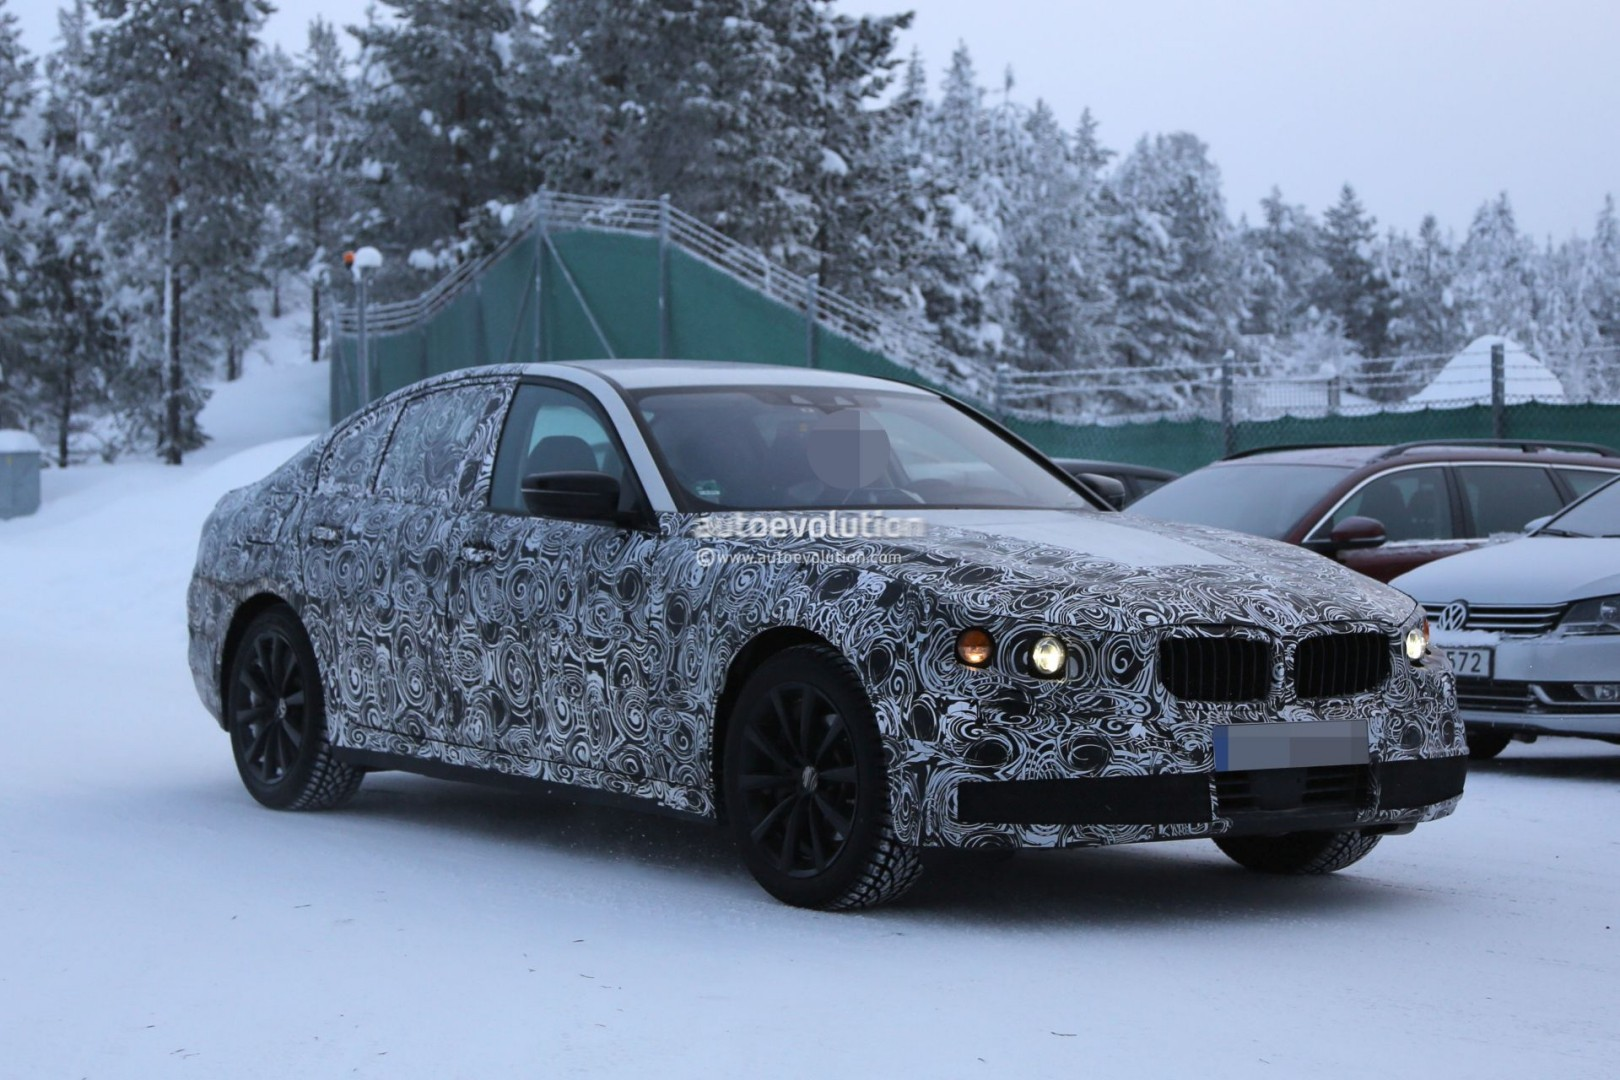 2017 bmw g30 5 series plug in hybrid spied testing near the arctic circle autoevolution. Black Bedroom Furniture Sets. Home Design Ideas